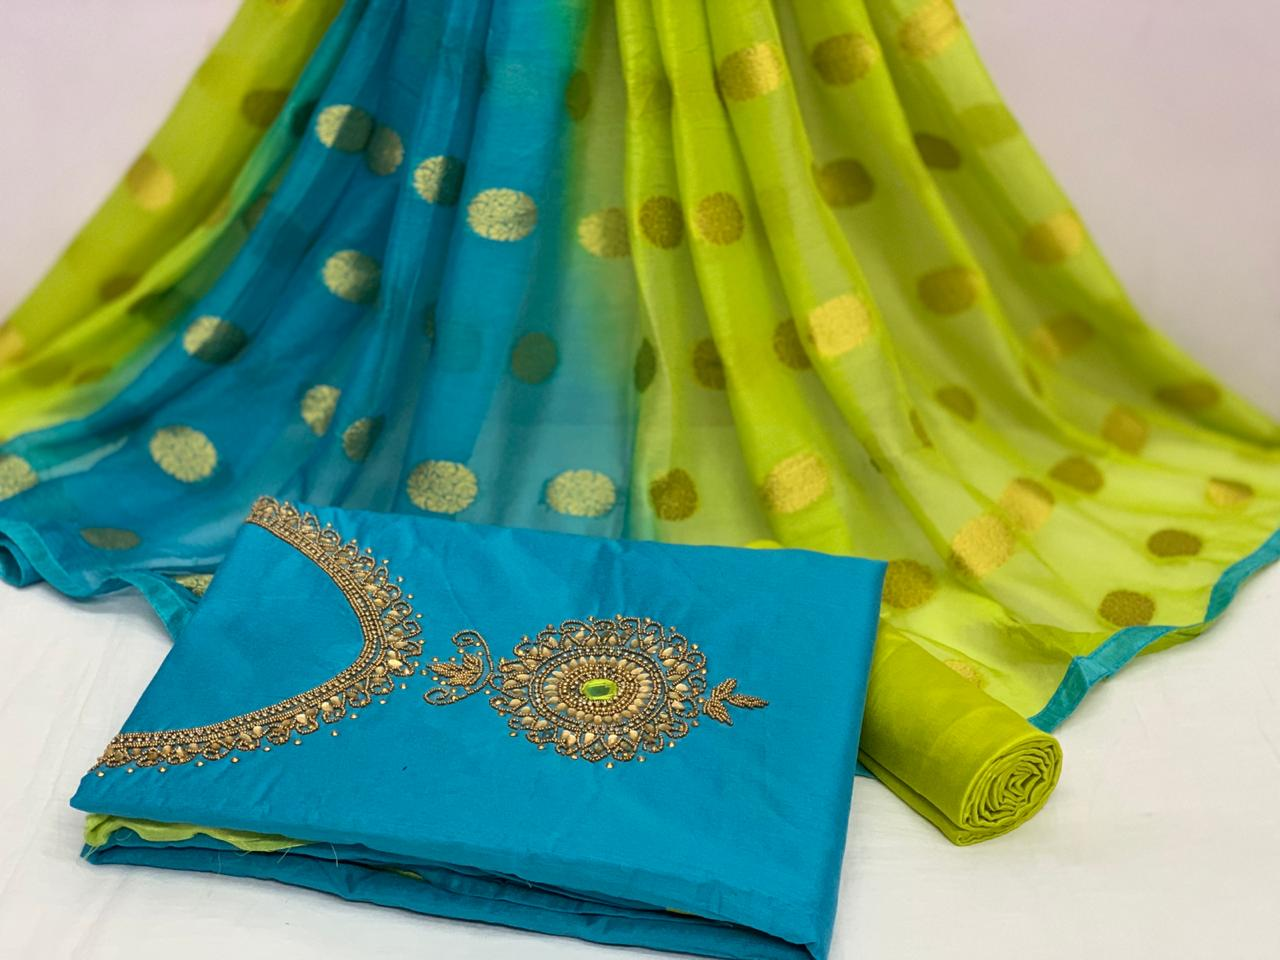 Alluring Sky Blue Color Chanderi Cotton Designer Hand Khatli Work Salwar Suit For Function Wear